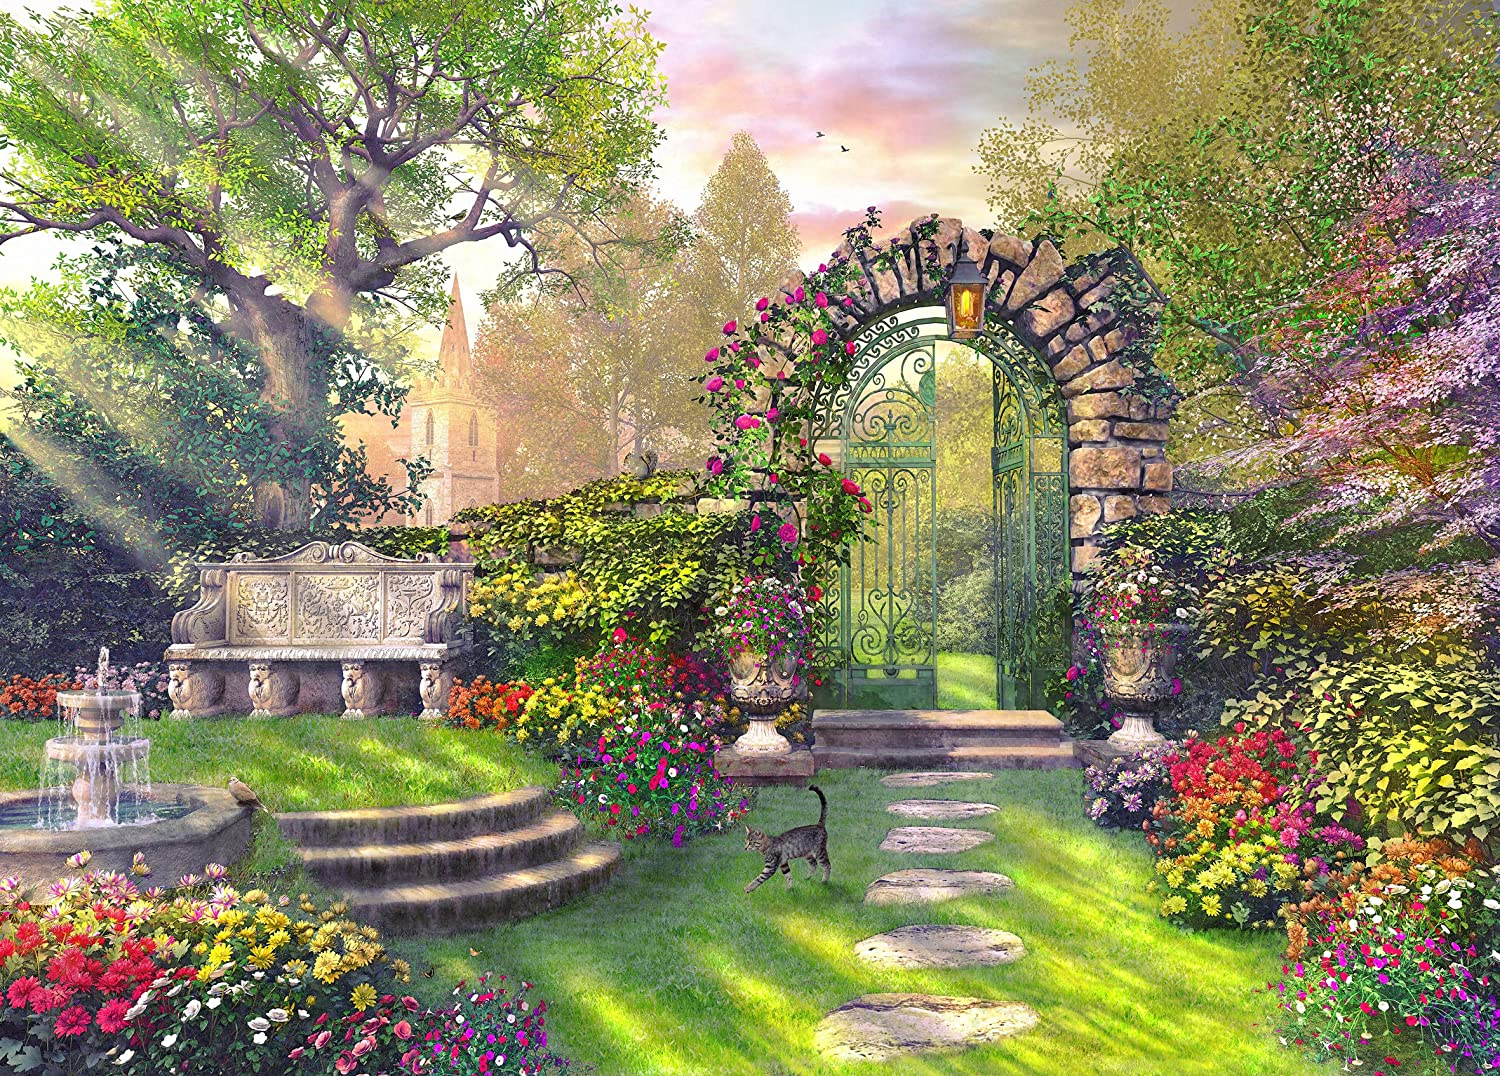 Chamberart Gate of The Garden 500 Piece Jigsaw Puzzle [Pouch Included]